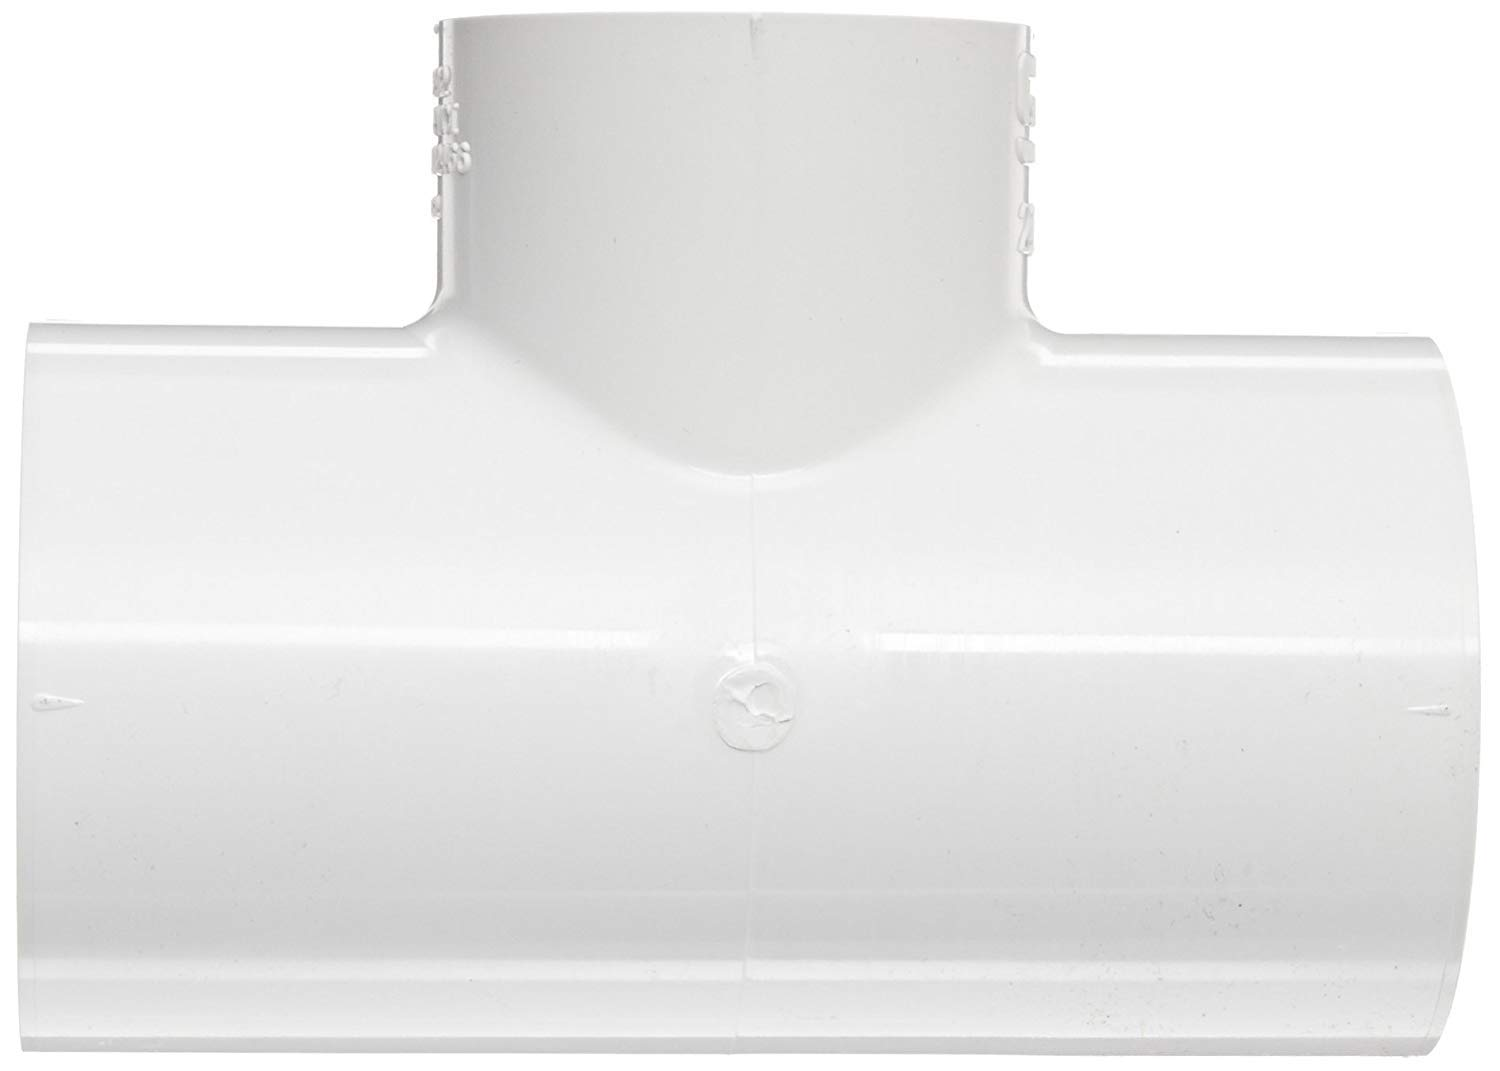 Schedule 40 White Spears 401 Series PVC Pipe Fitting Tee 1 x 1//2 Socket